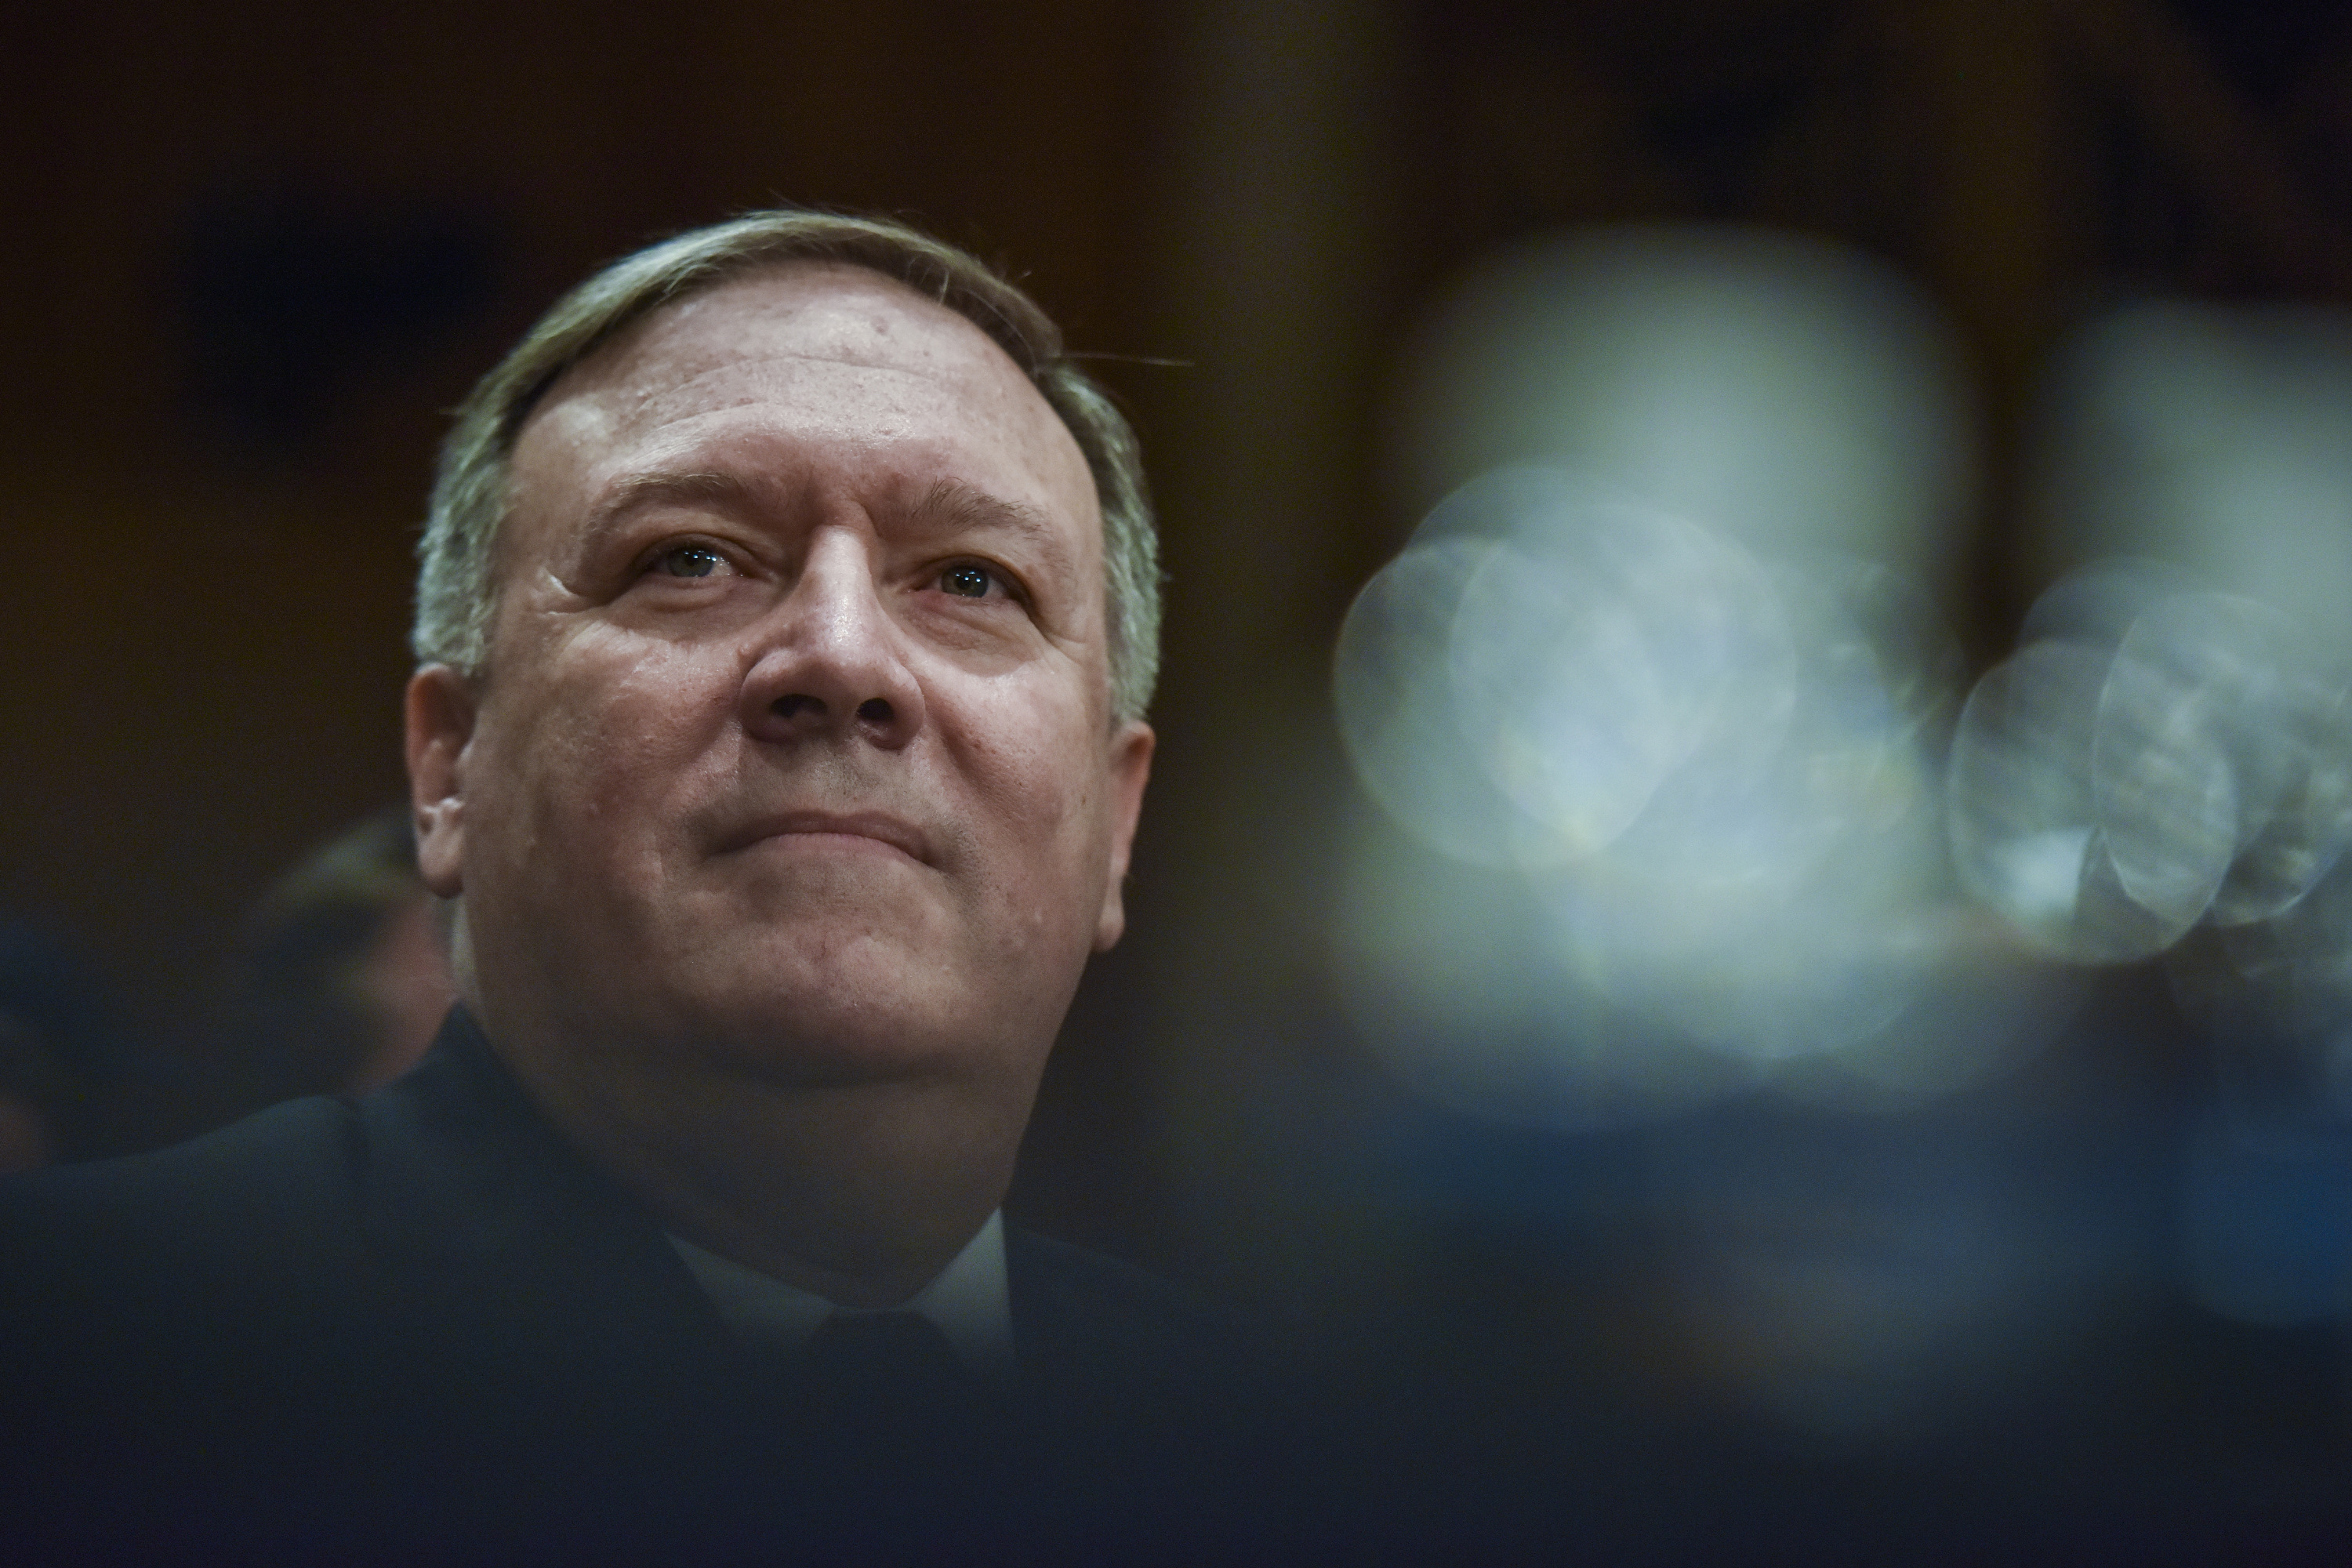 Mike Pompeo, Nomination Hearings As Secretary of State